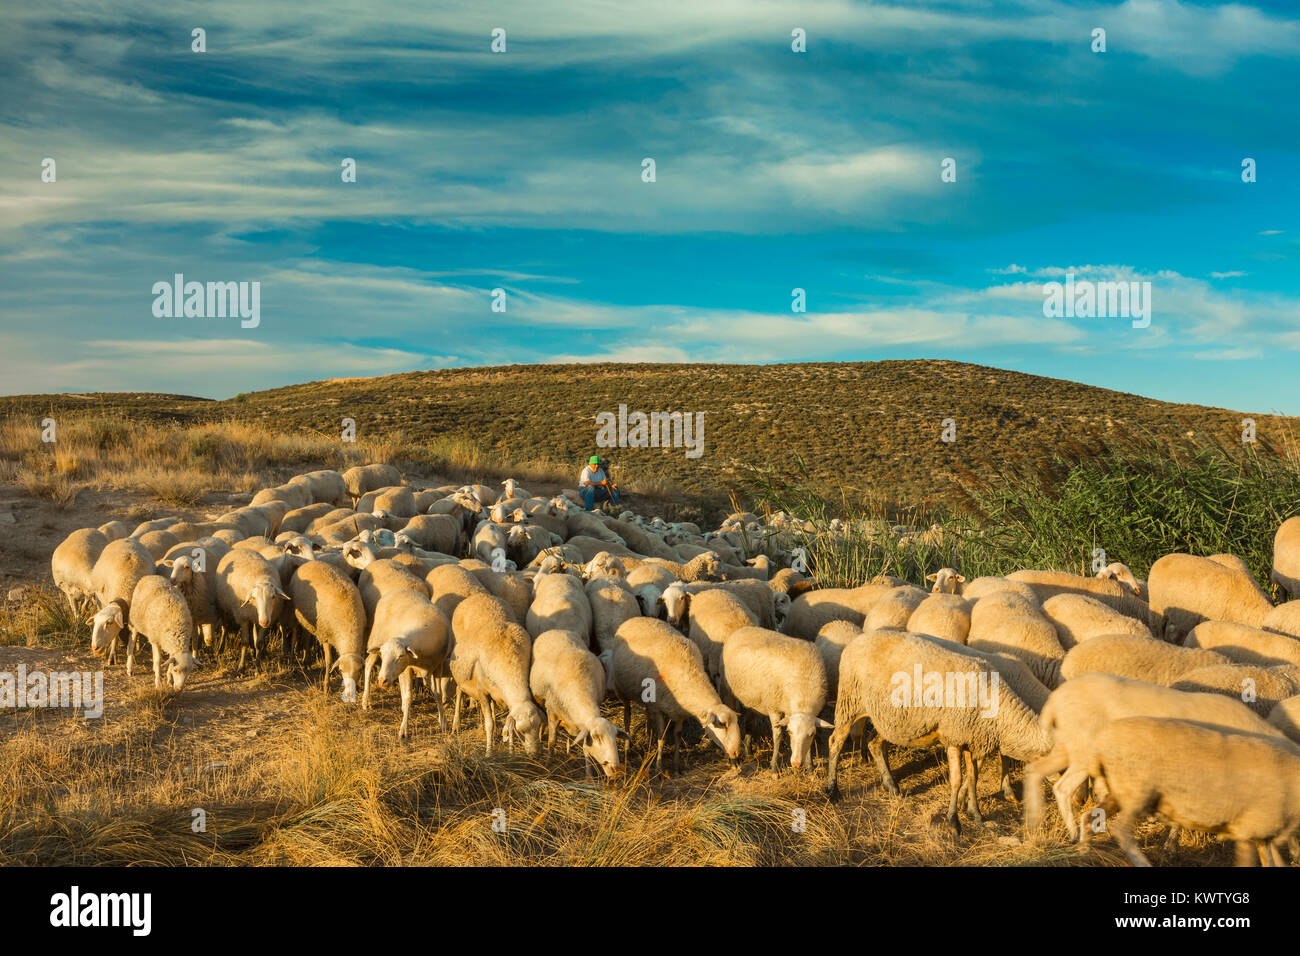 Flock of sheep and shepherd in a cereal land. Tierra Estella county. Navarre, Spain, Europe. - Stock Image